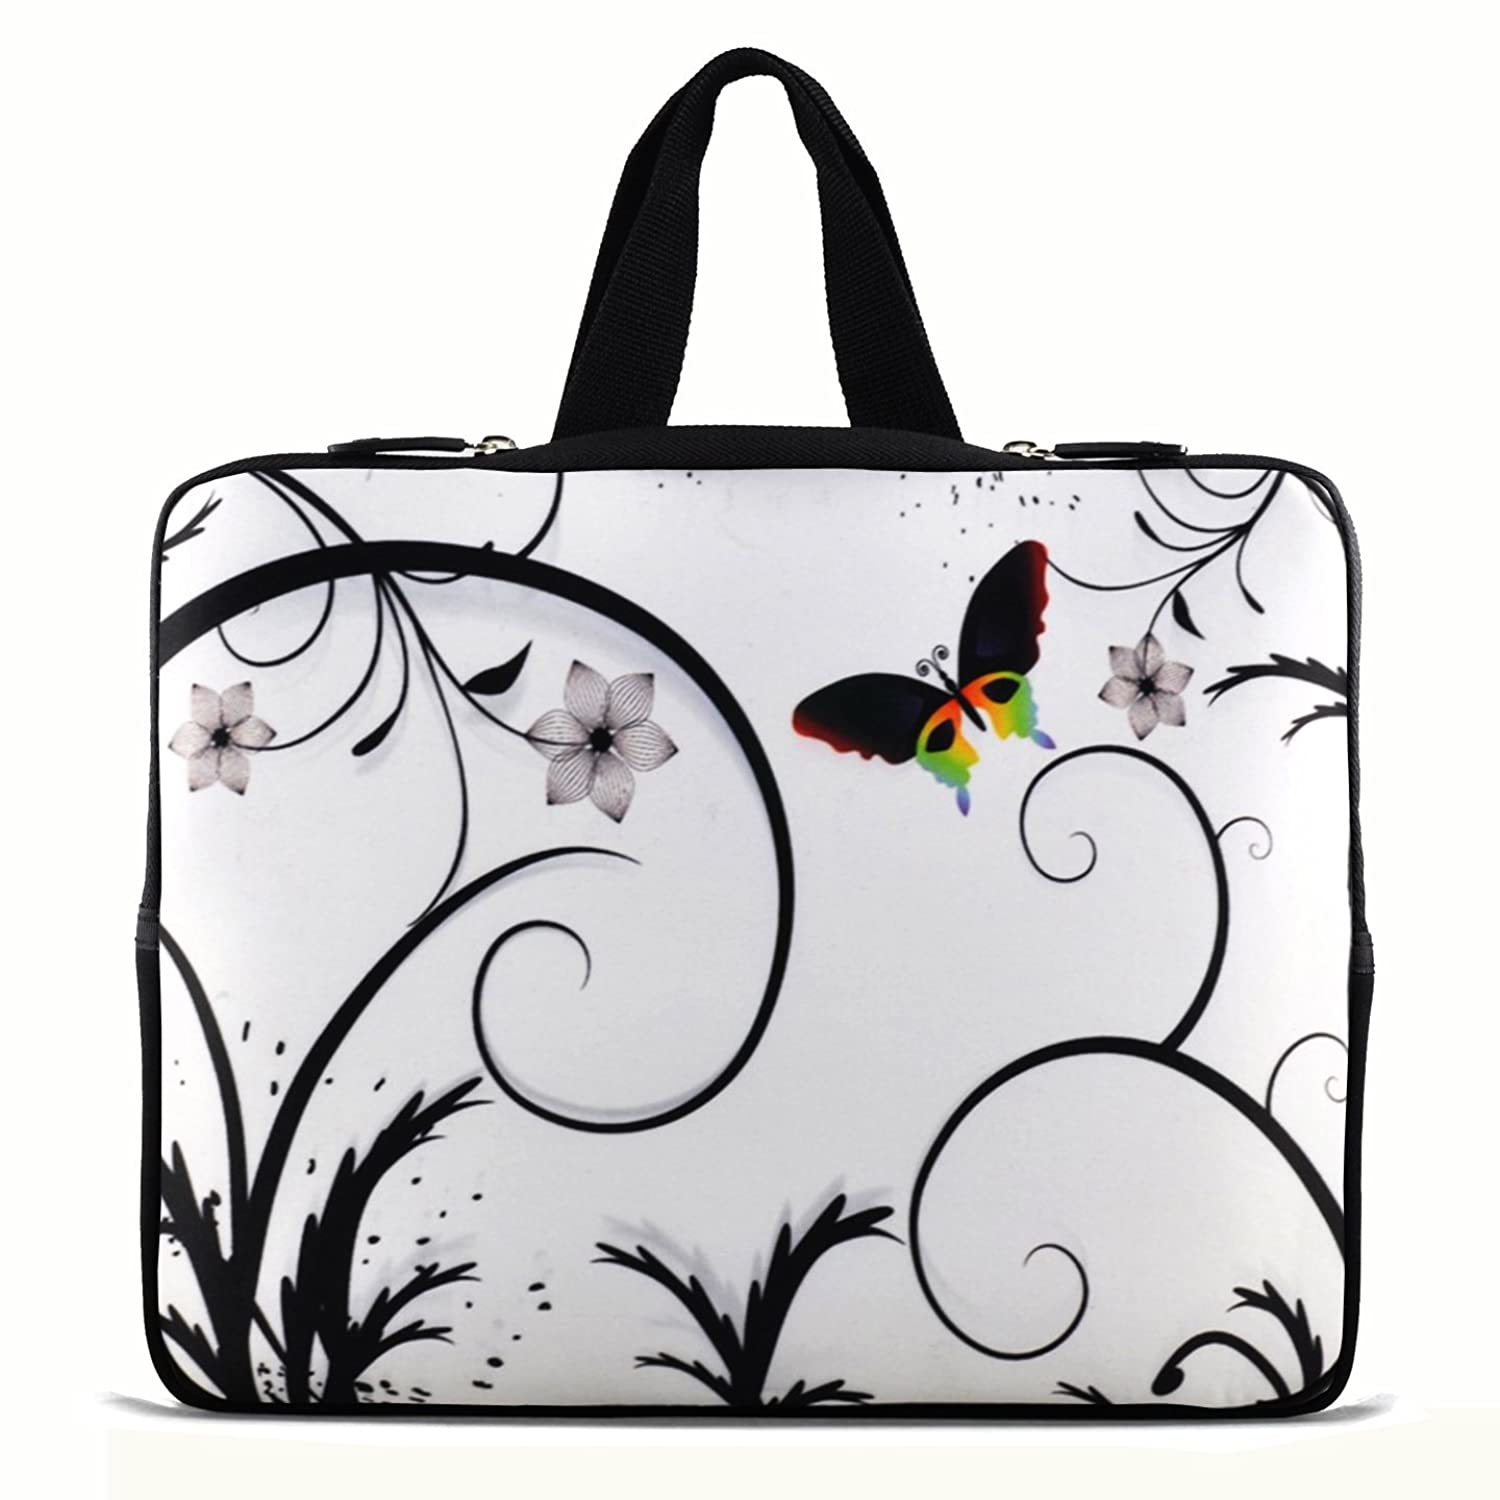 Laptop Case Sleeve Bag Cover 15-Inch 15.5-Inch 15.6-Inch Butterly ,Handle For HP DELL Sony Acer ASUS